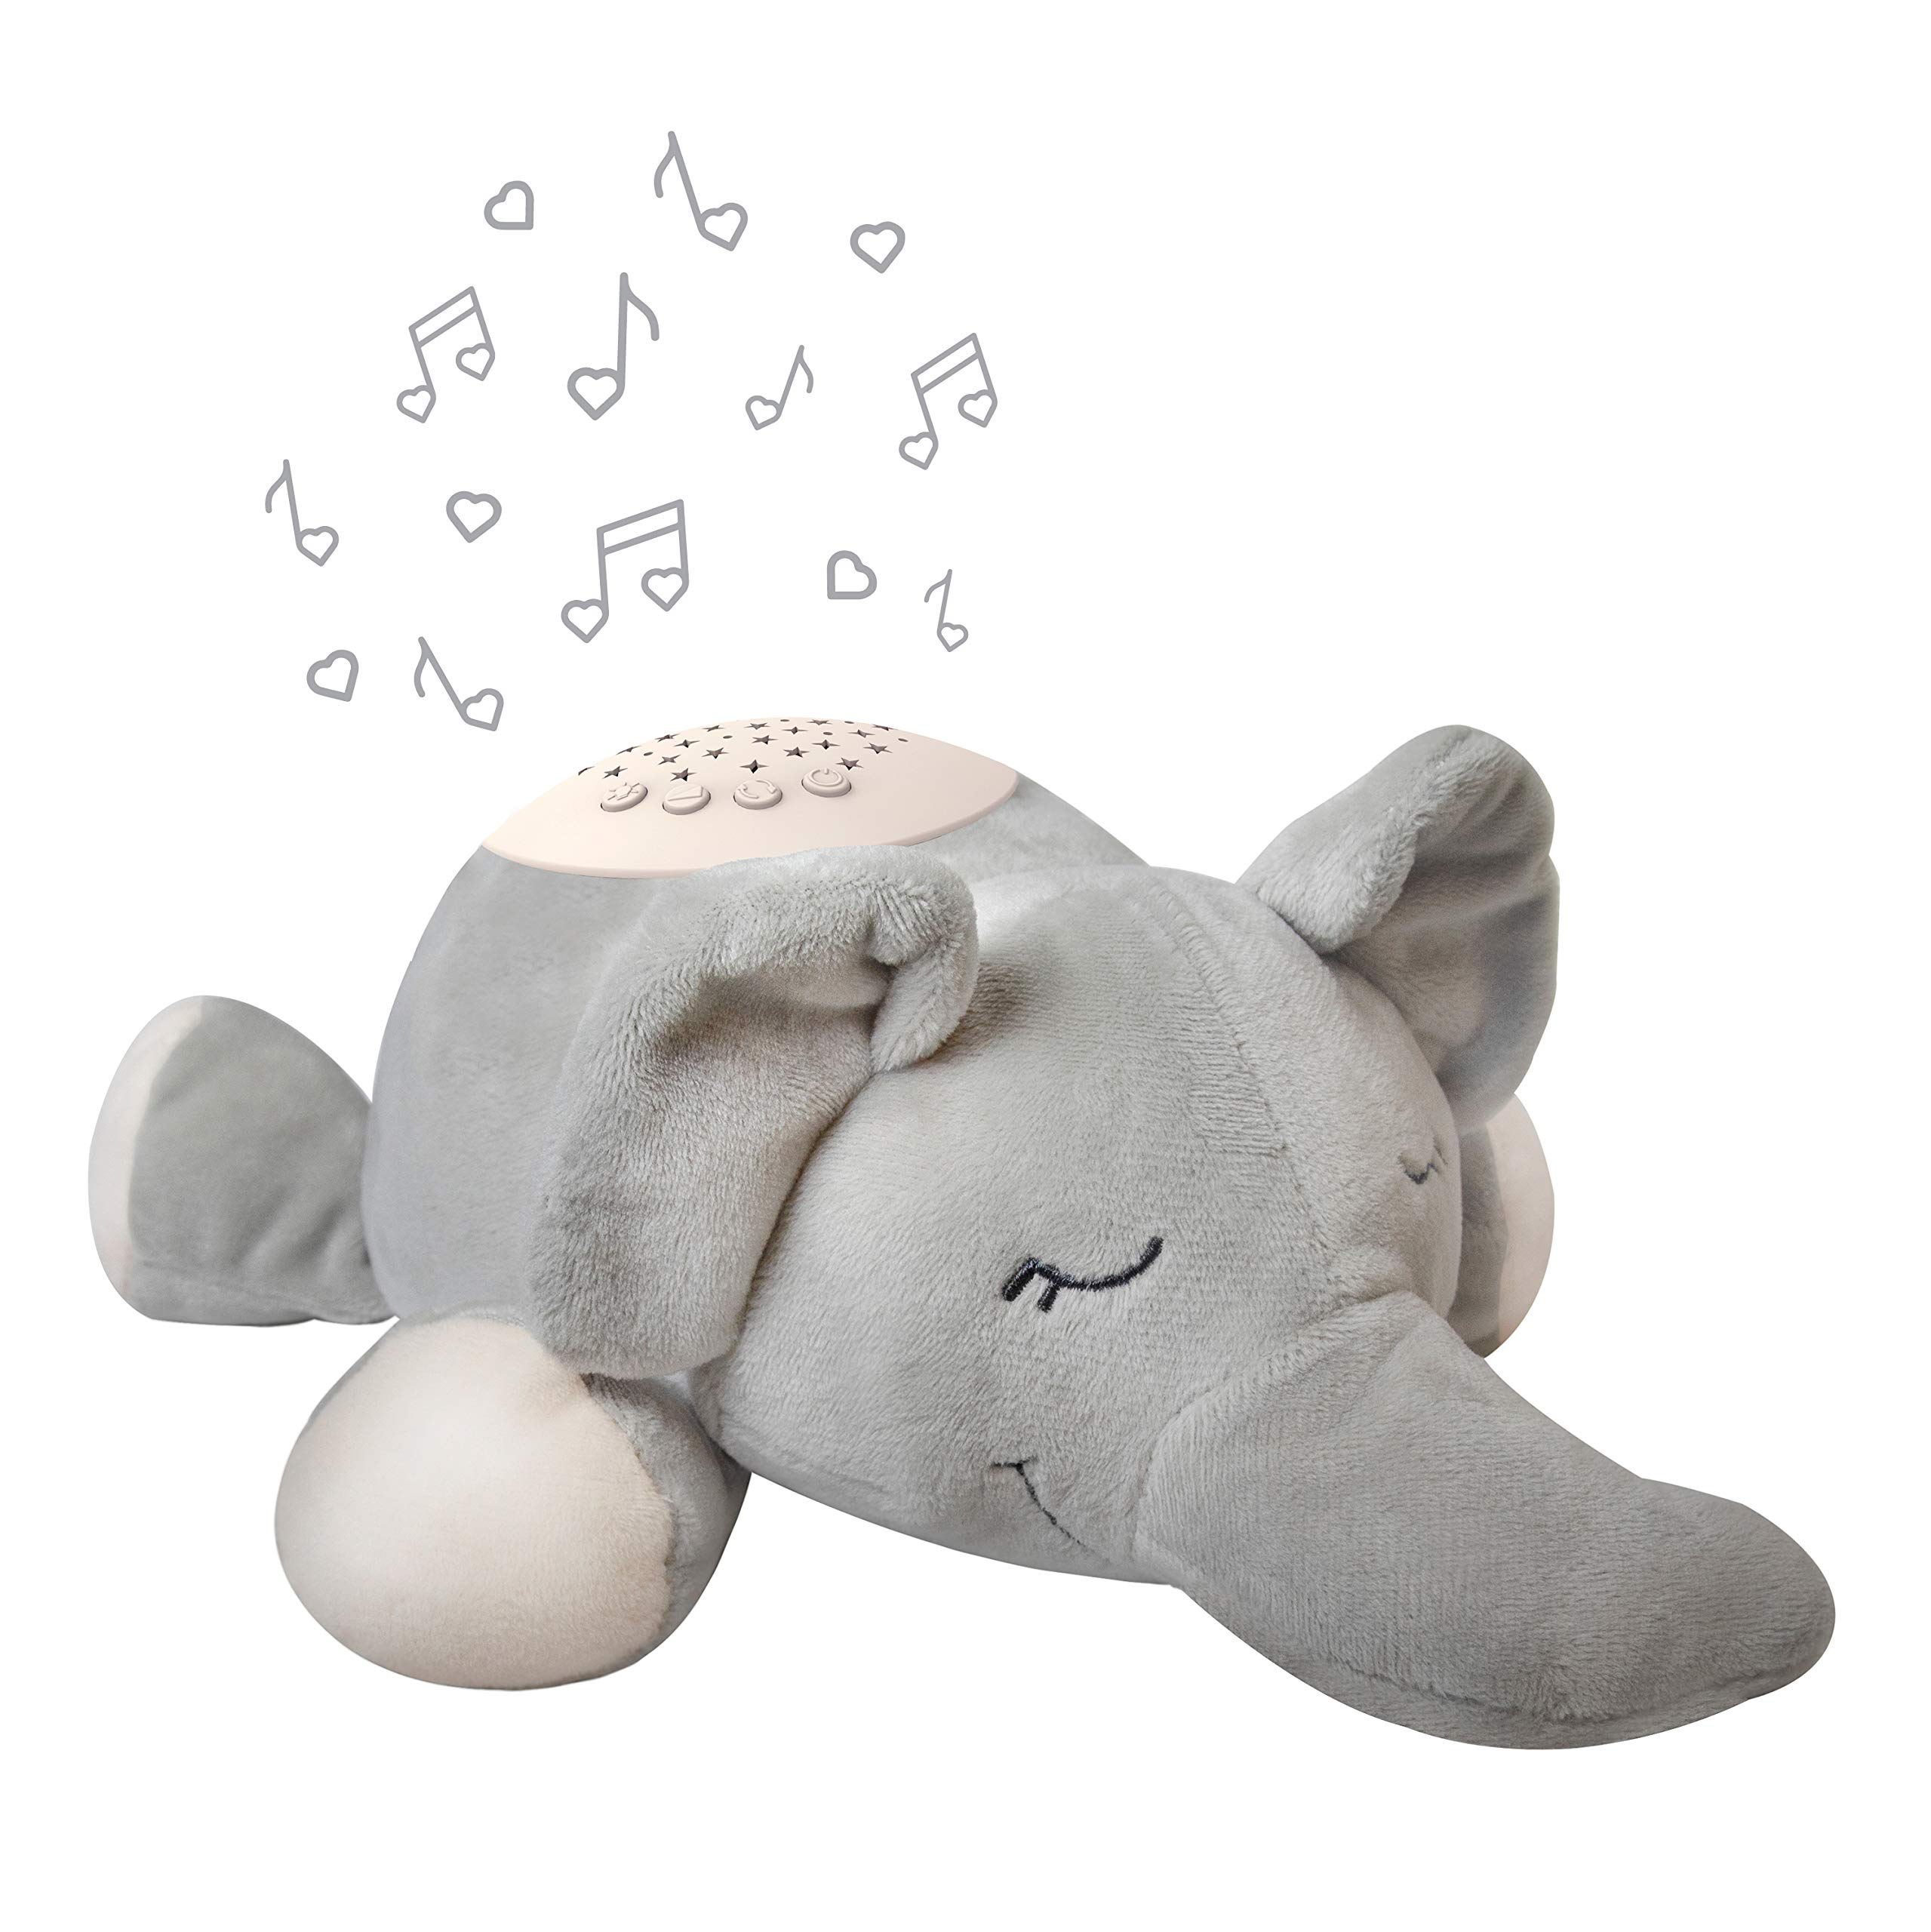 PureBaby Sound Sleepers Portable Sound Machine & Star Projector - Plush Sleep Aid for Baby and Toddlers with Soothing Night Light Display, 10 Lullabies, White Noise, and Heartbeat Sounds (Elephant)